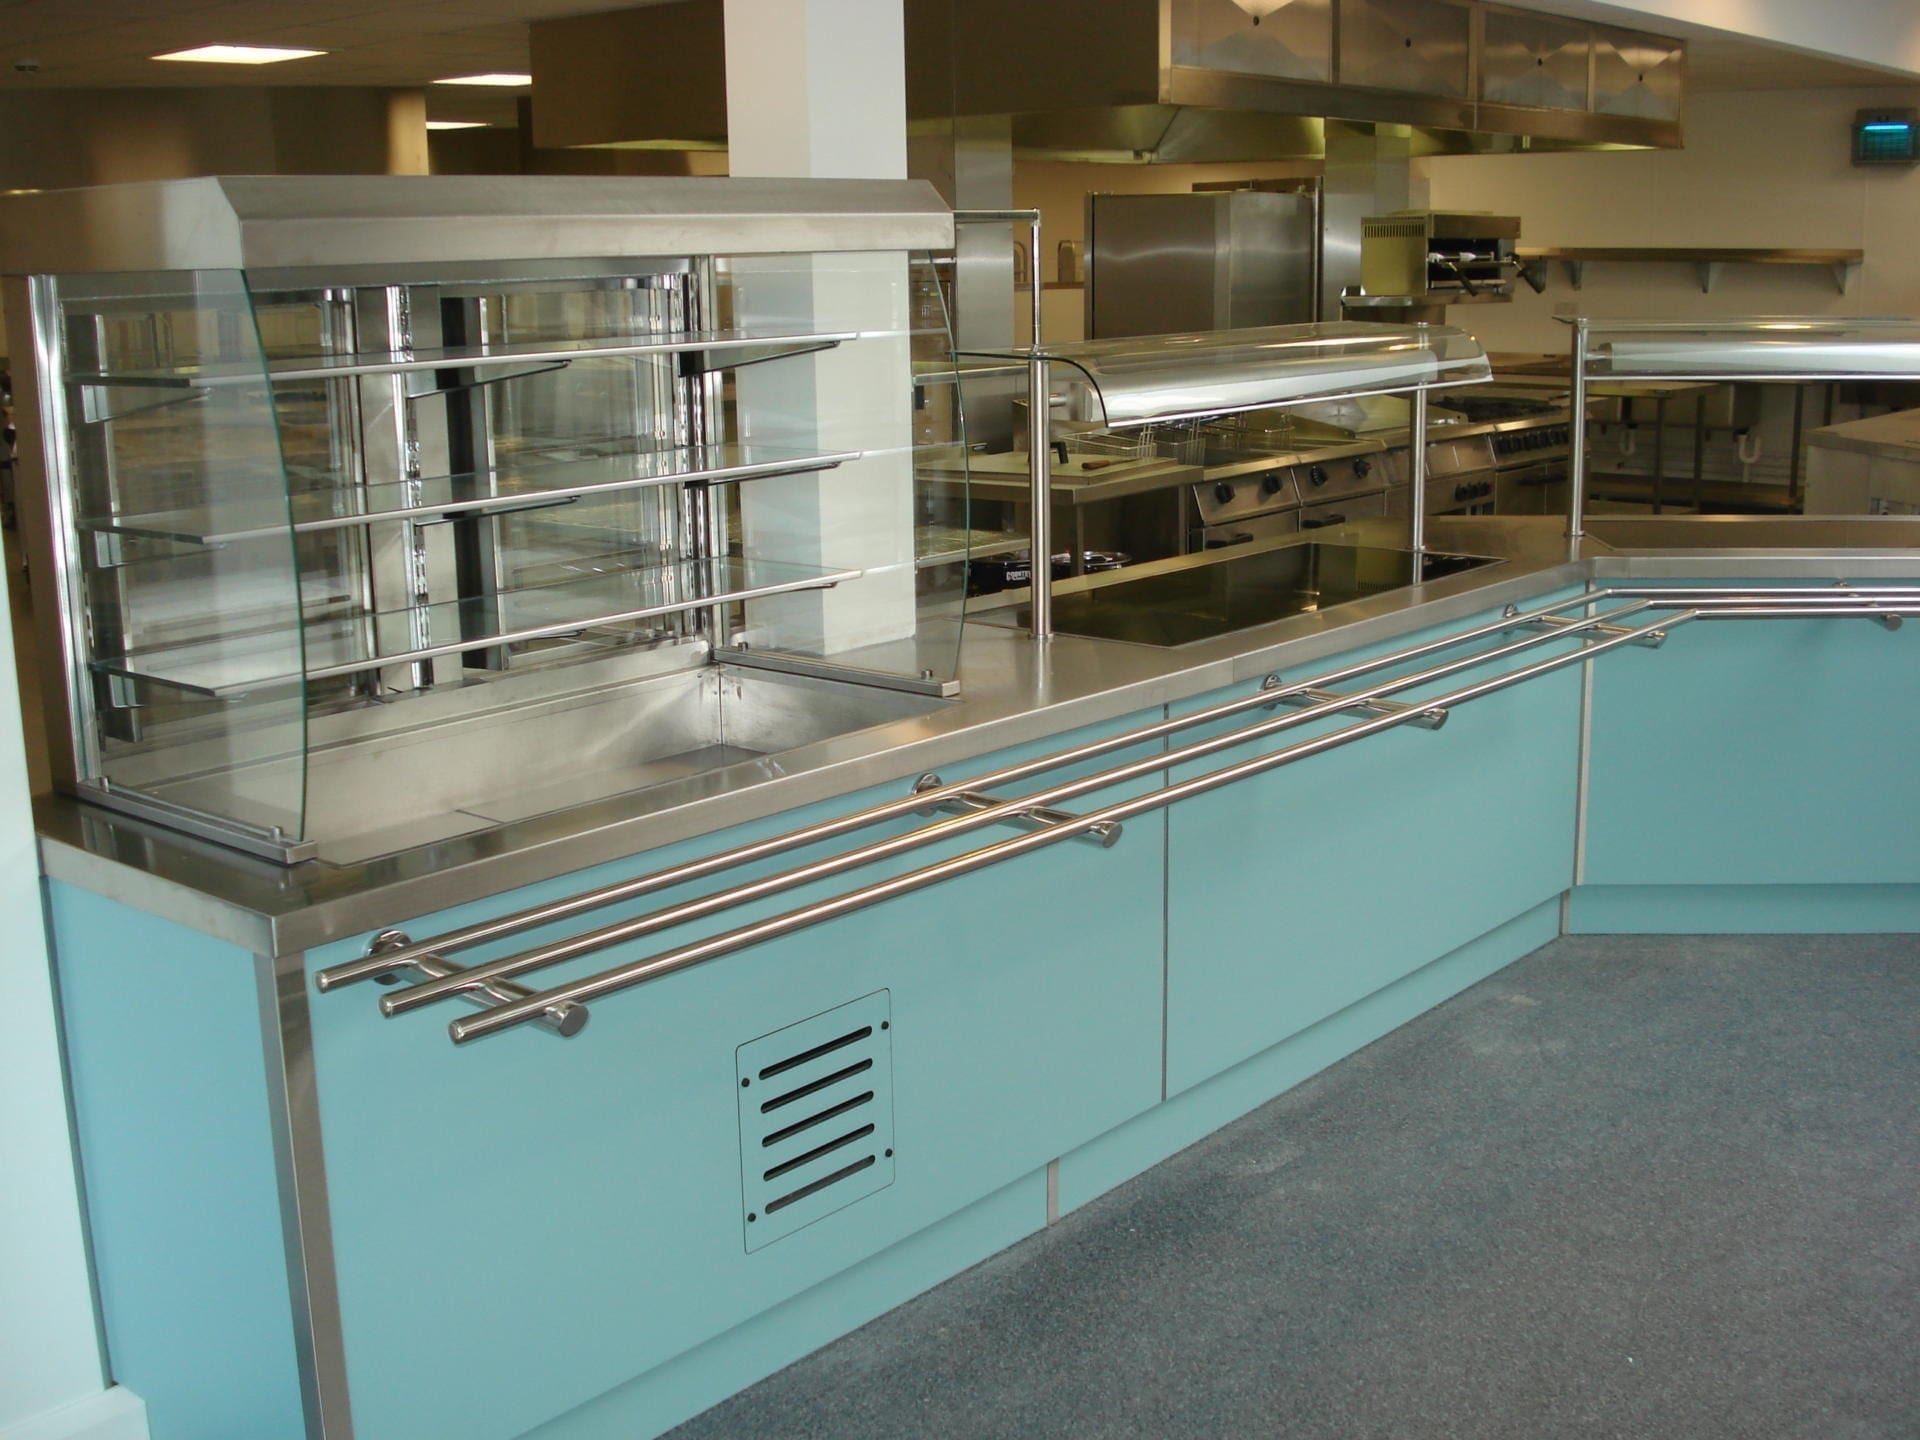 Gloucester-College-Gloucester-Servery-Stainless-Steel-fabrication-cooking-Foodtech-teaching-spacecatering_2